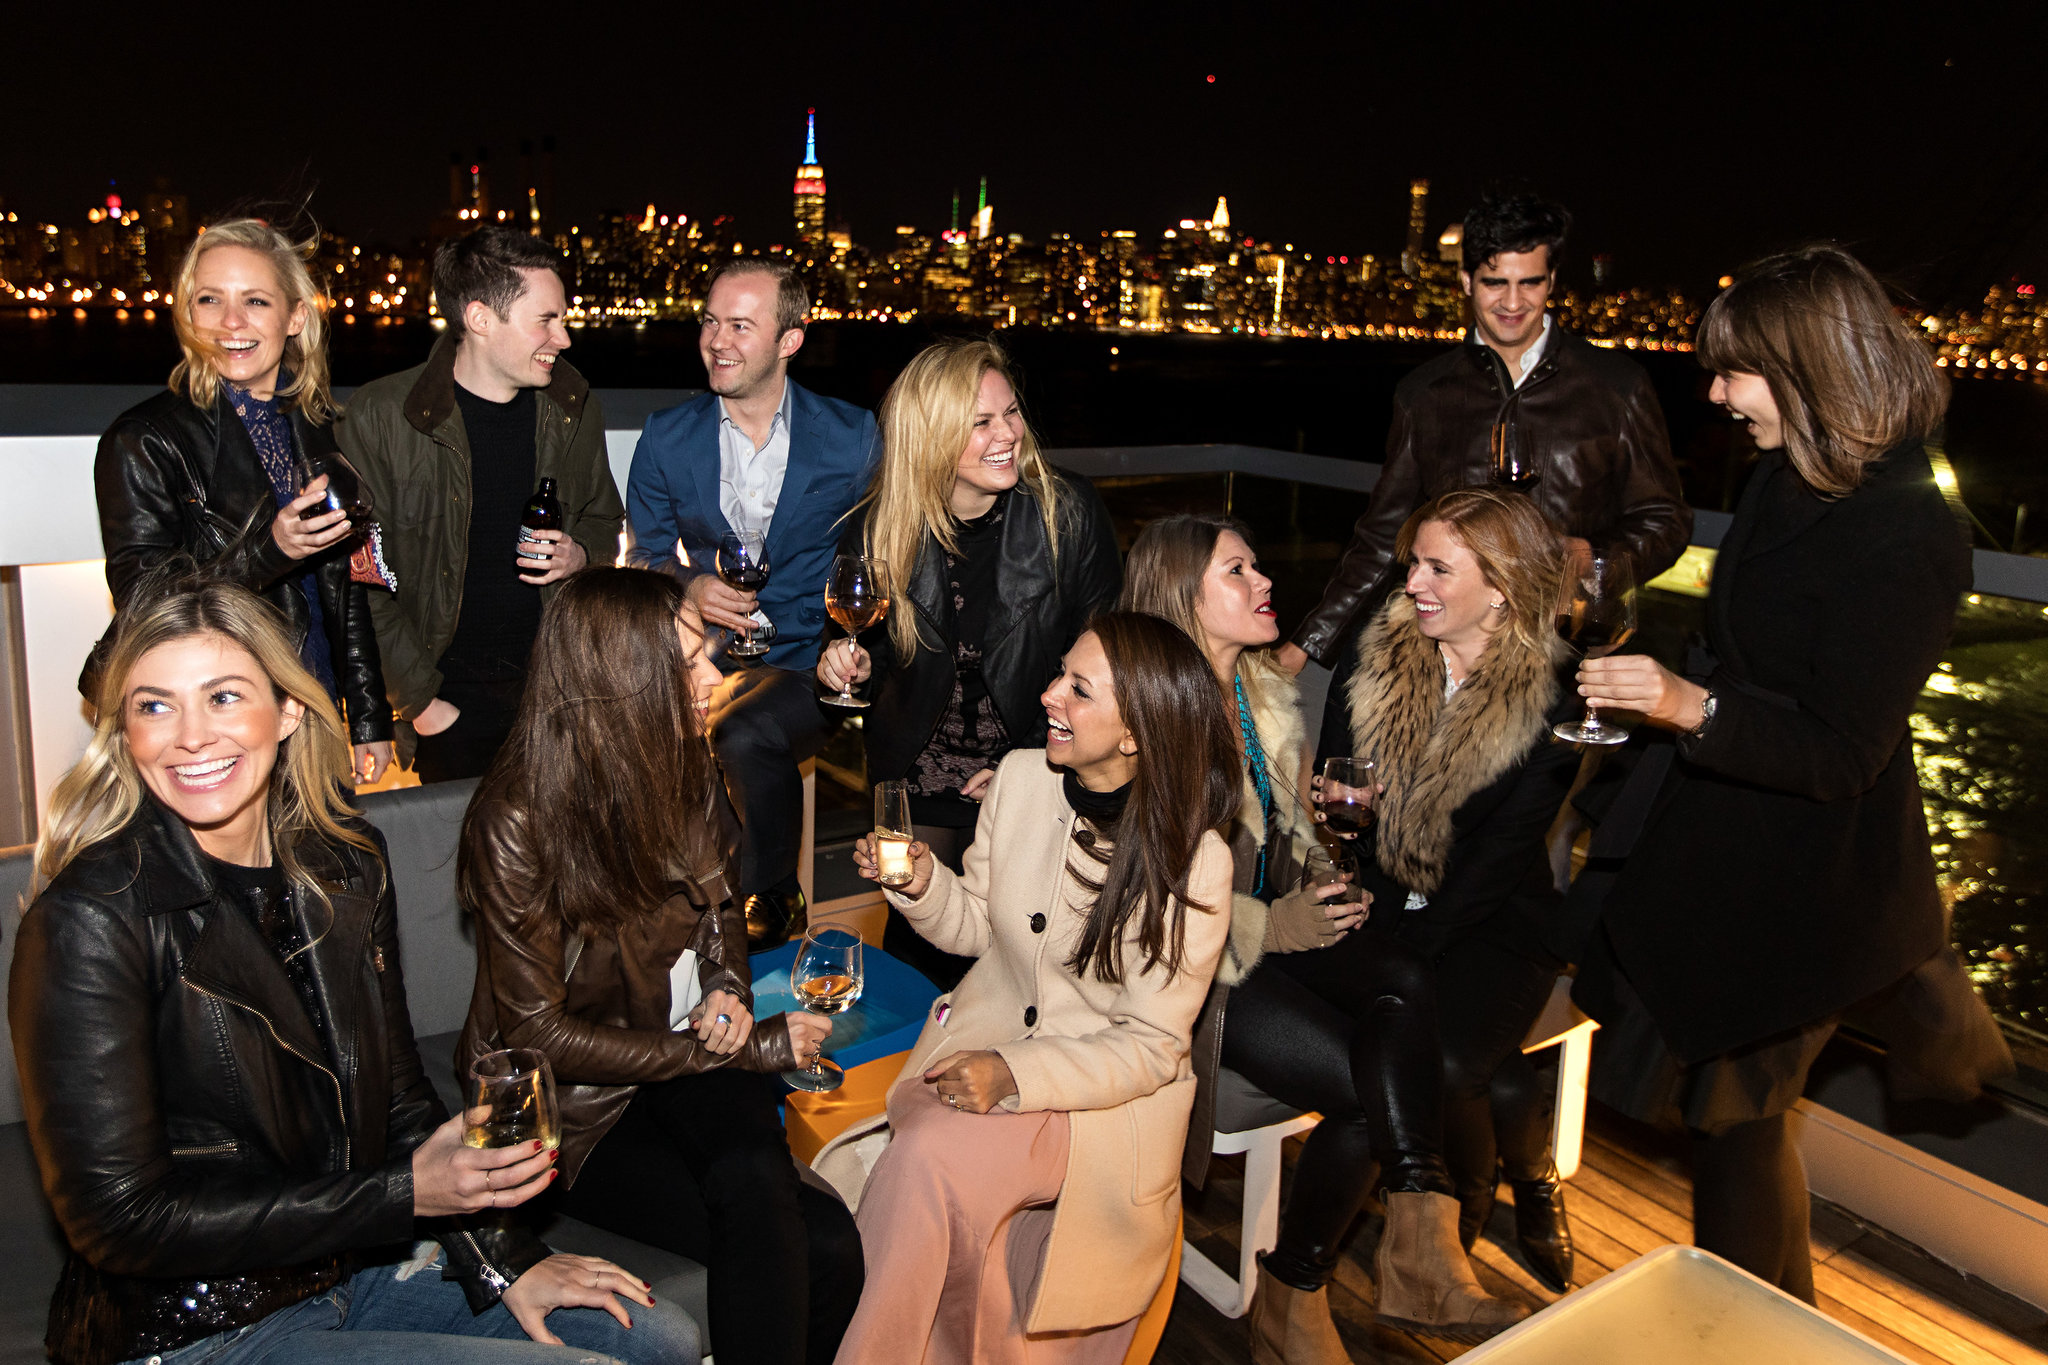 How to meet guys in nyc